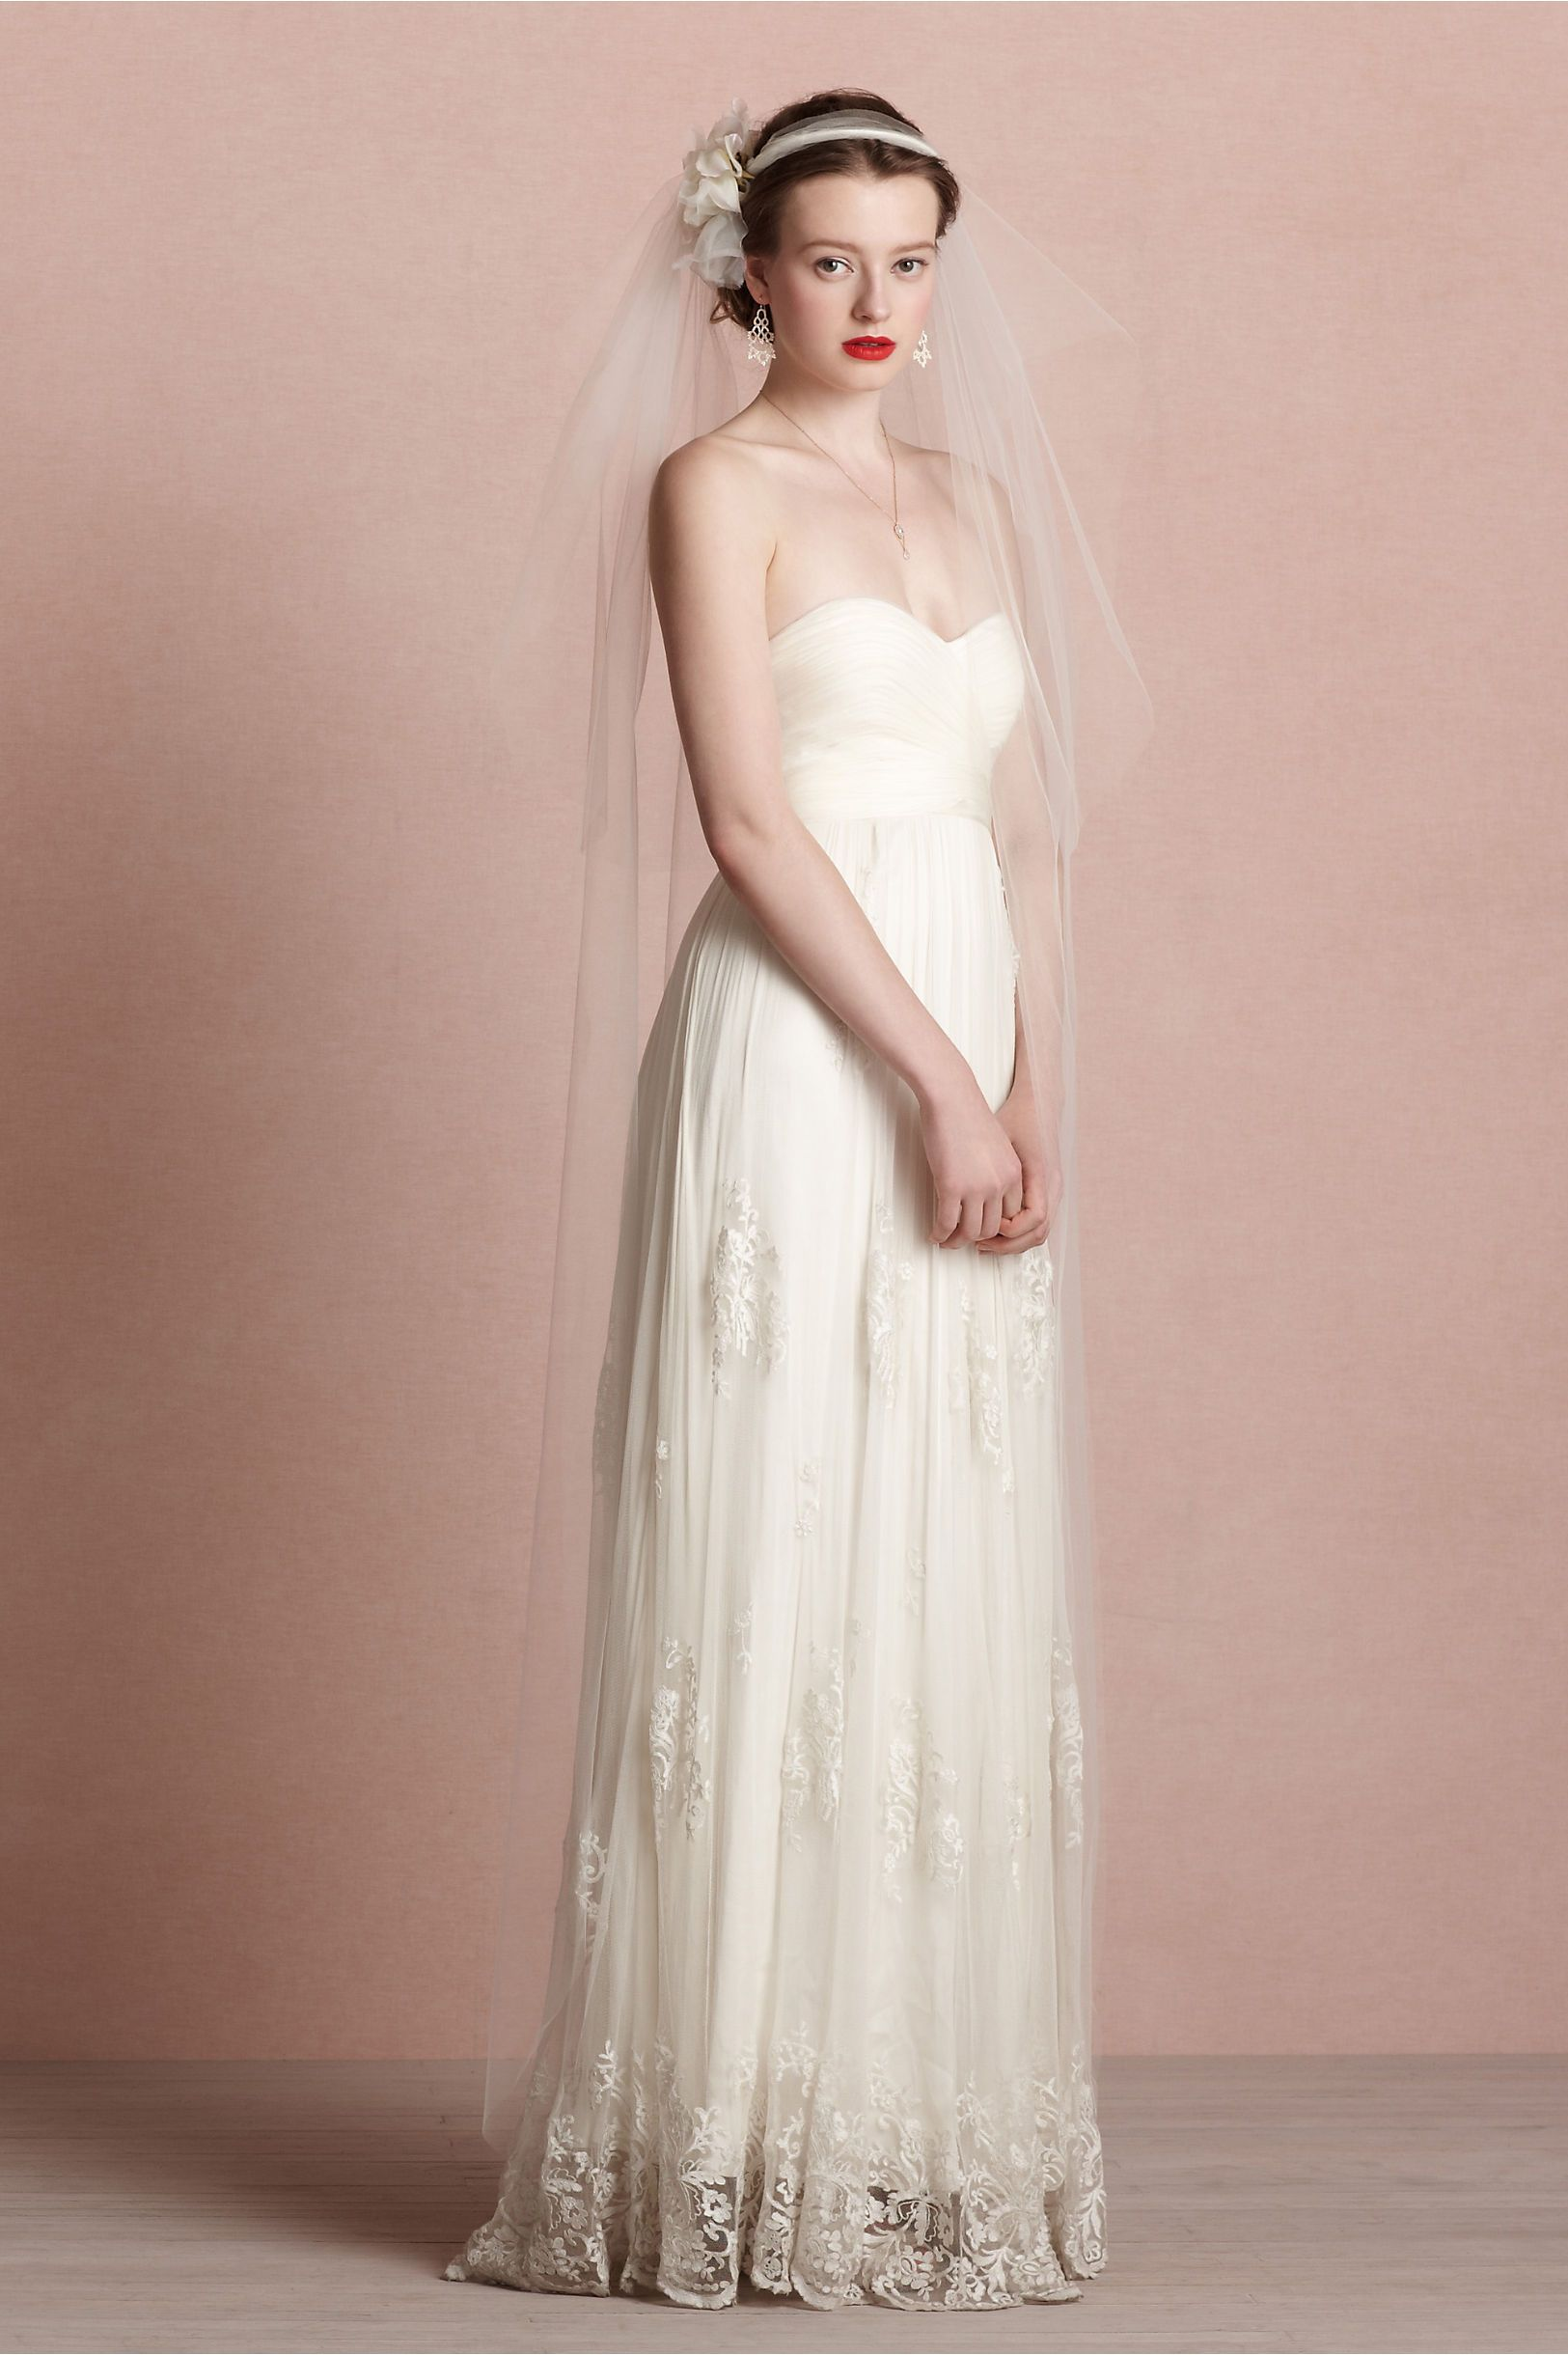 Bourbon Rose Veil in Shoes & Accessories Veils at BHLDN | wedding ...